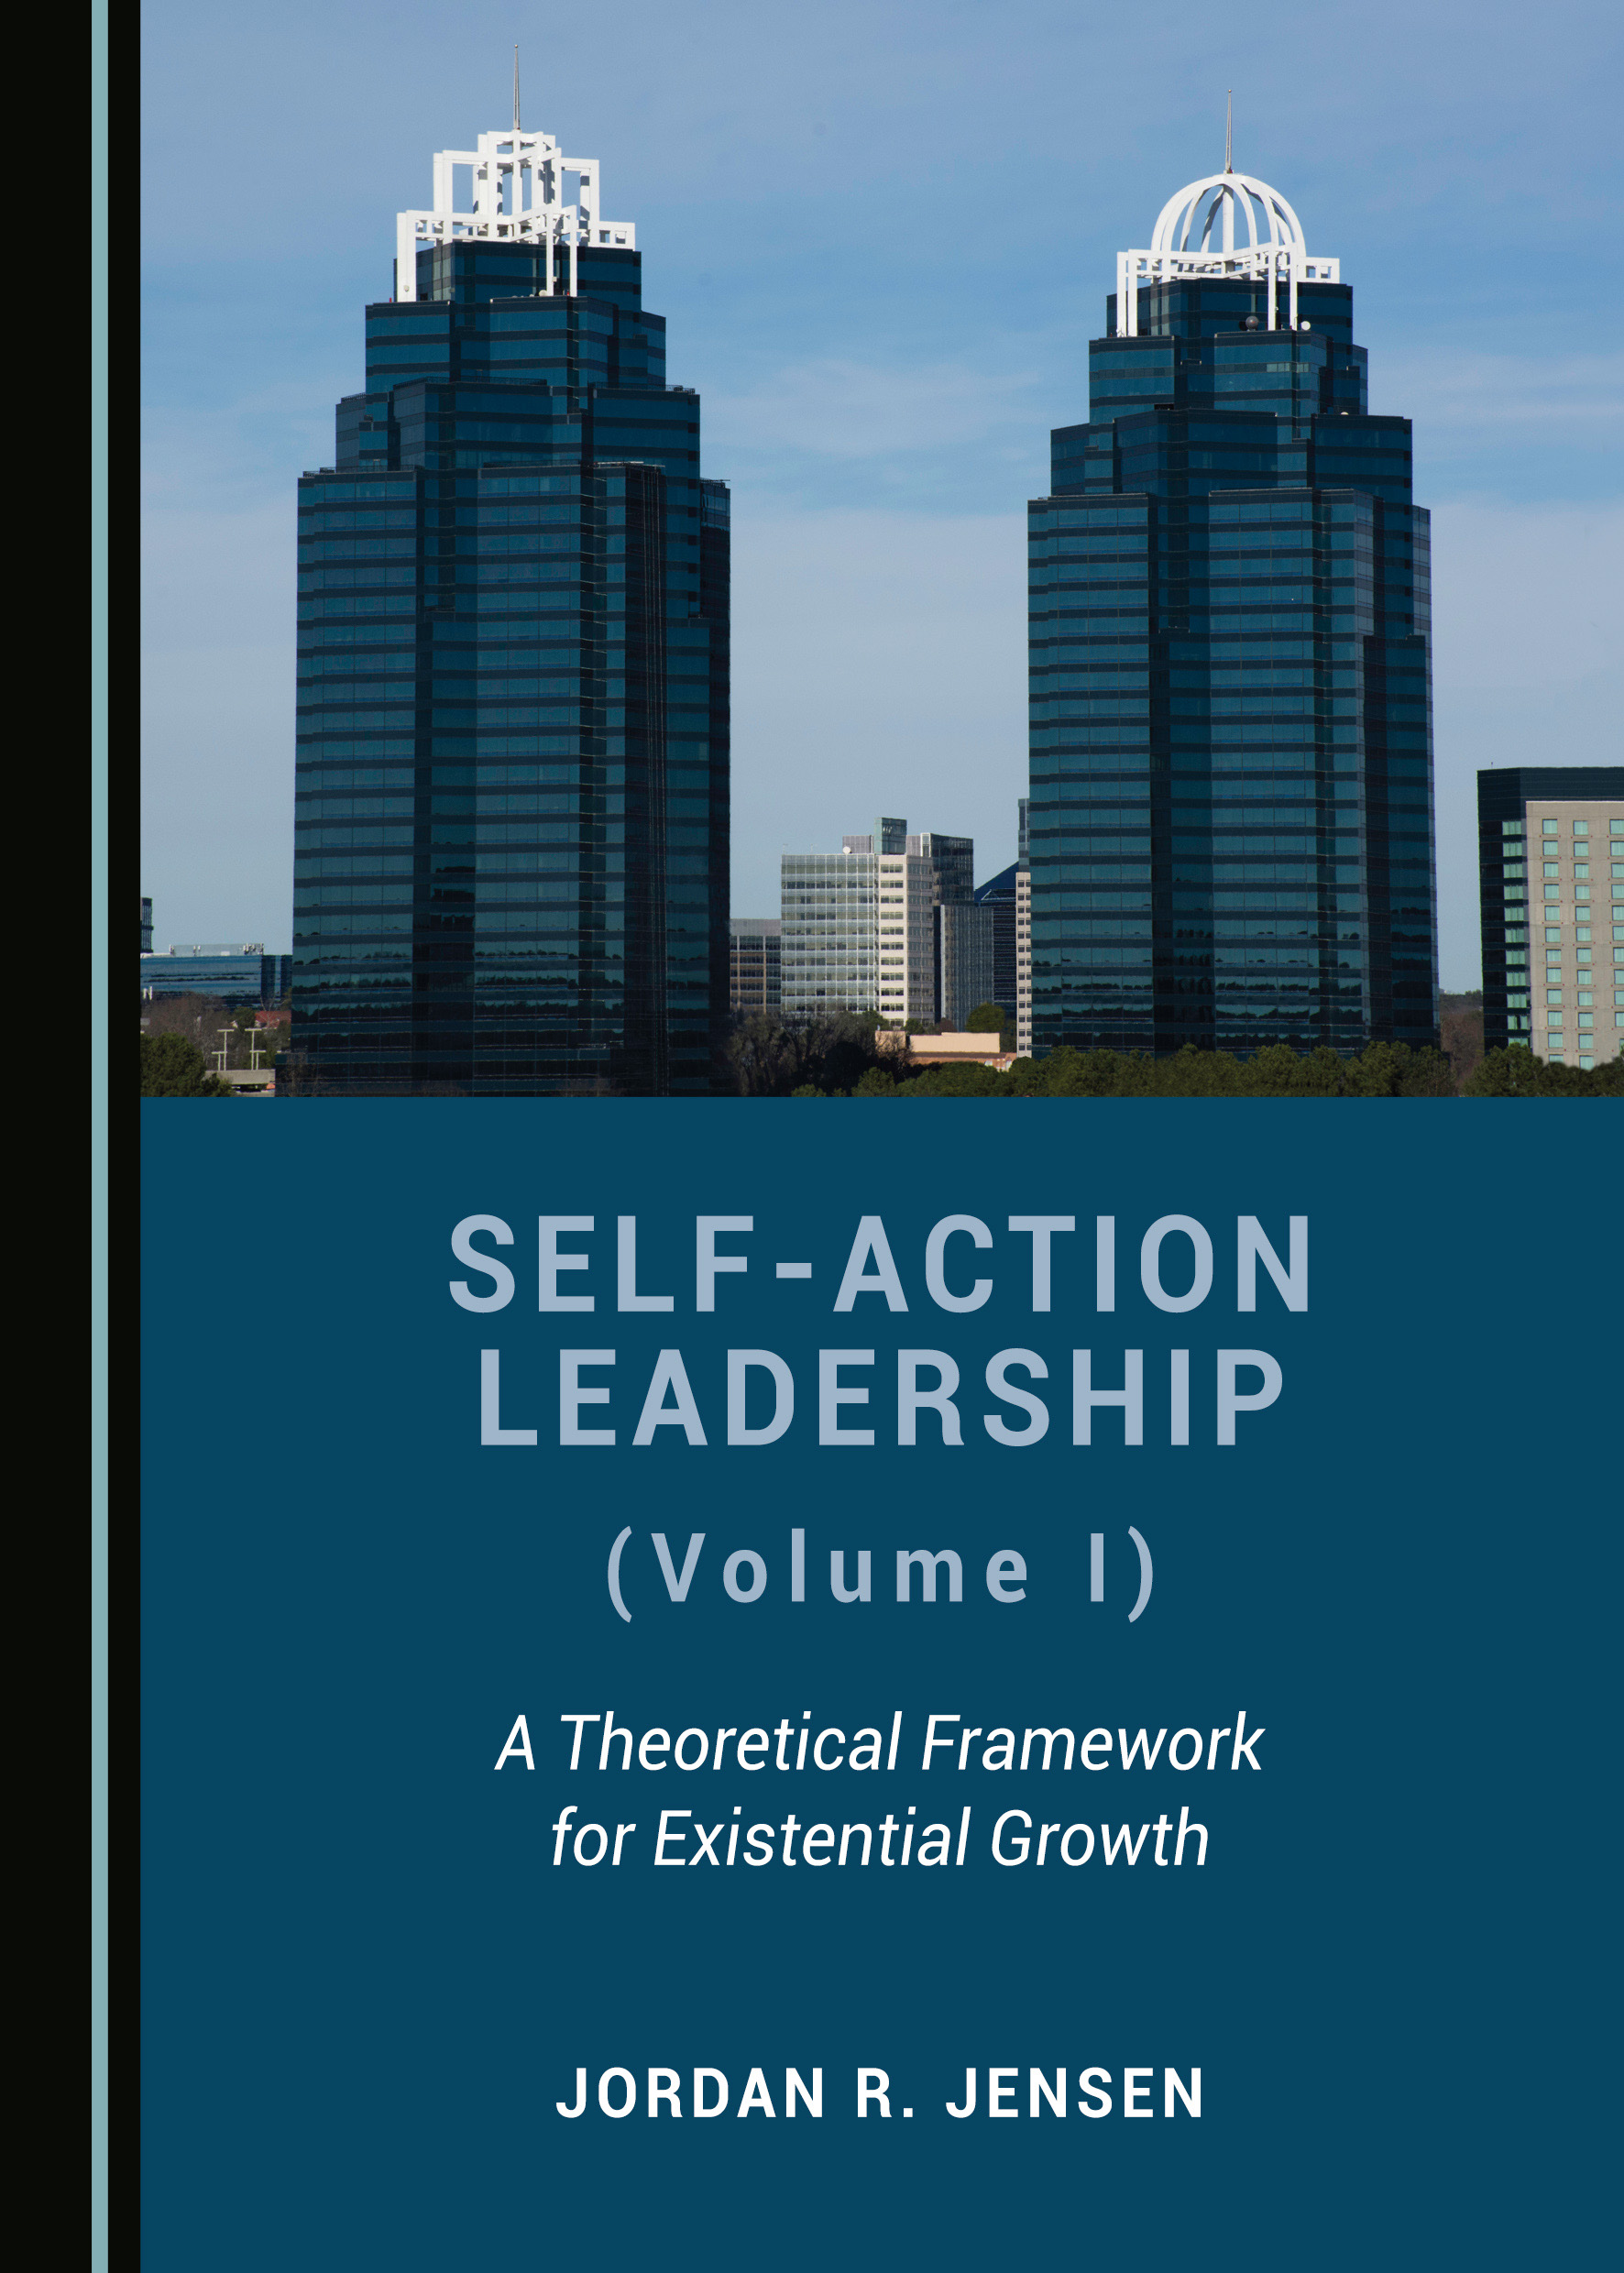 Self-Action Leadership (Volume I): A Theoretical Framework for Existential Growth